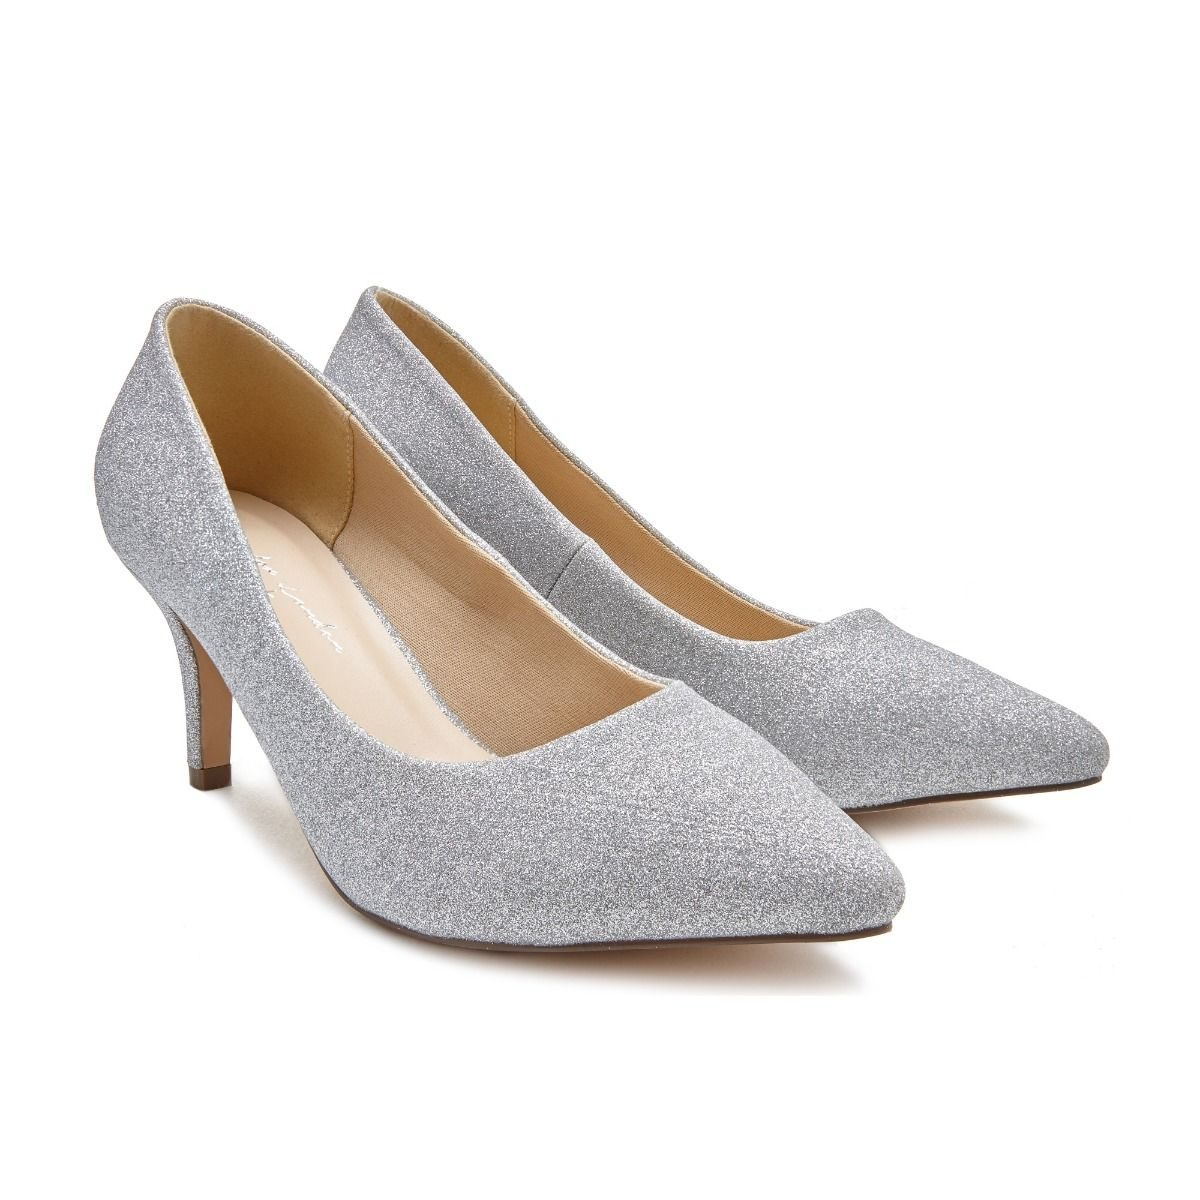 031c38b7a Pink Paradox Lavine Wide Fit - Low Heel Silver Court Shoe - Crystal ...